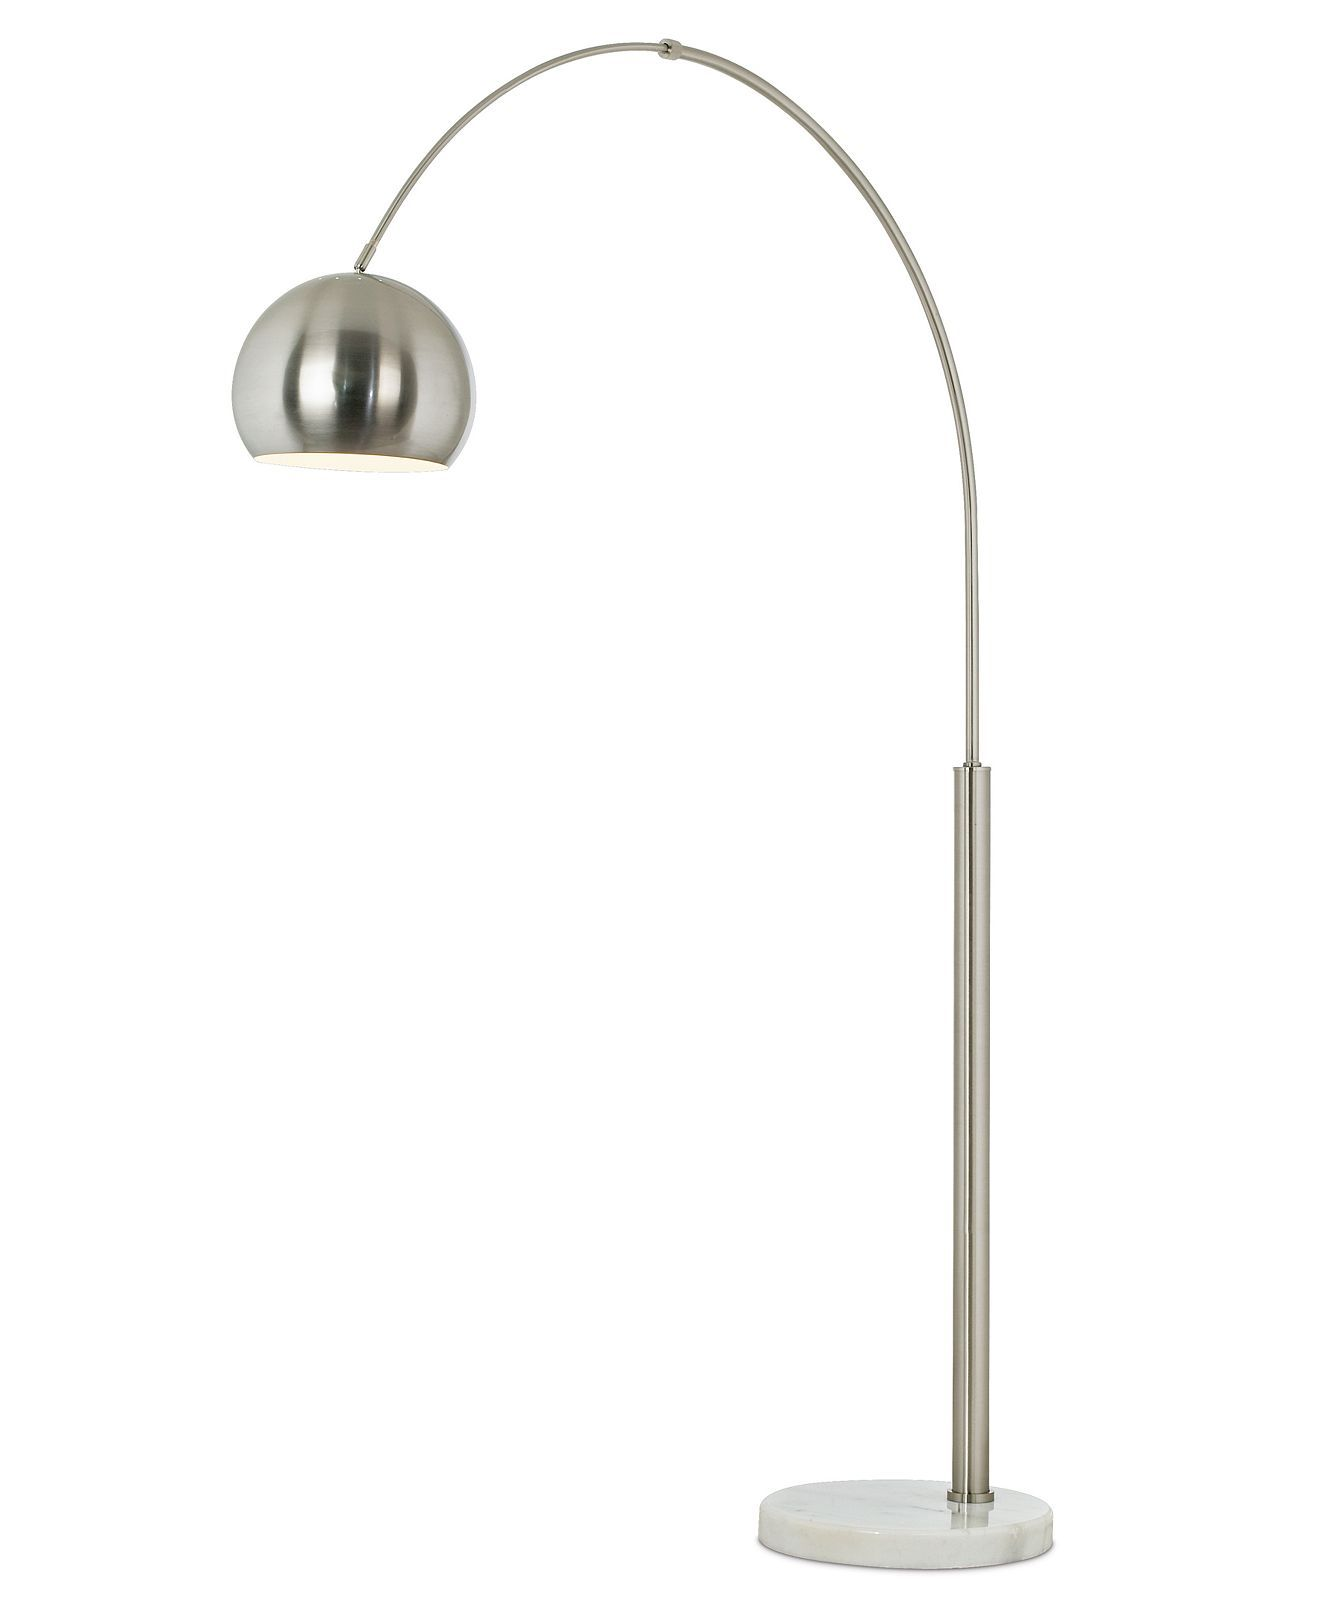 Basque Arc Nickel Floor Lamp Arc Floor Lamps Silver